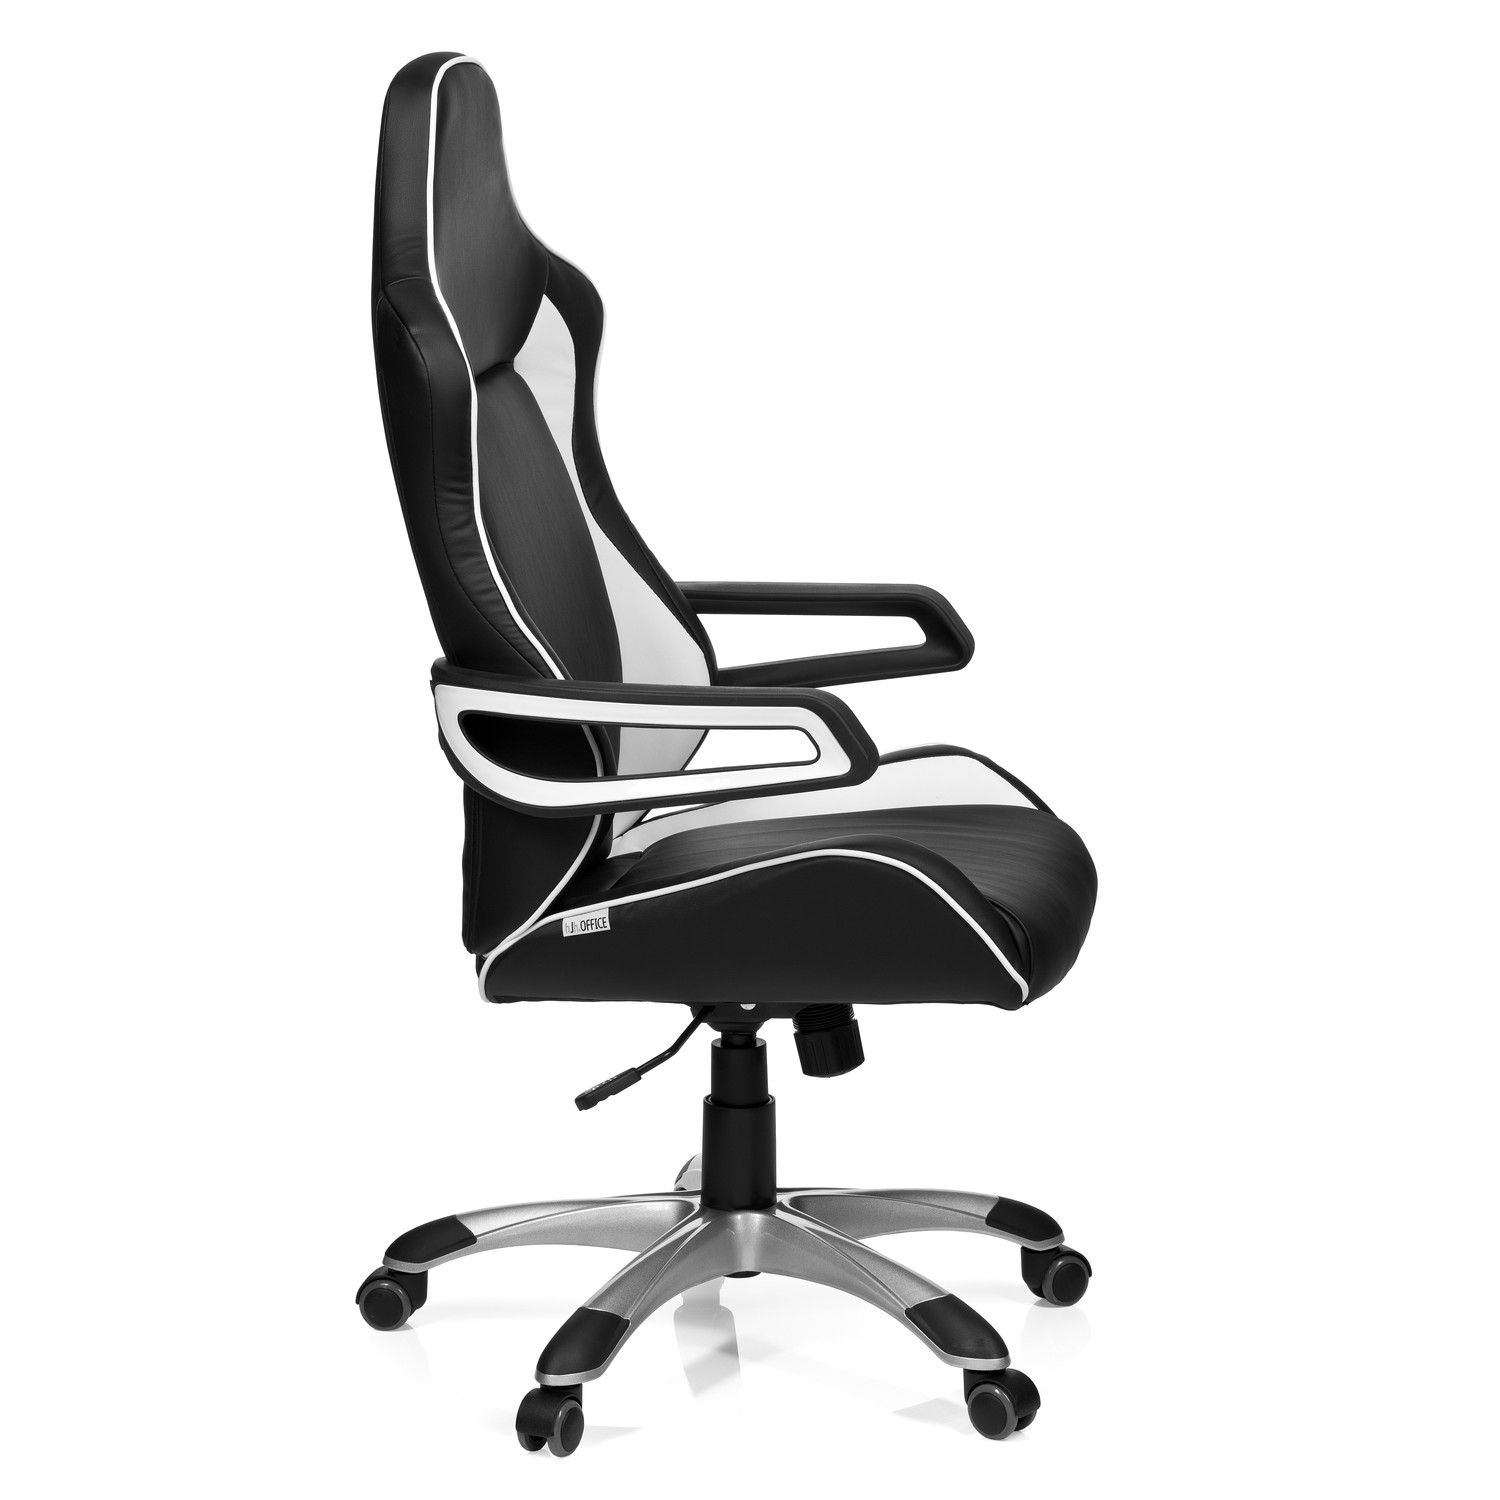 Silla ordenador gaming racer pro en color blanco negro for Silla ordenador gaming